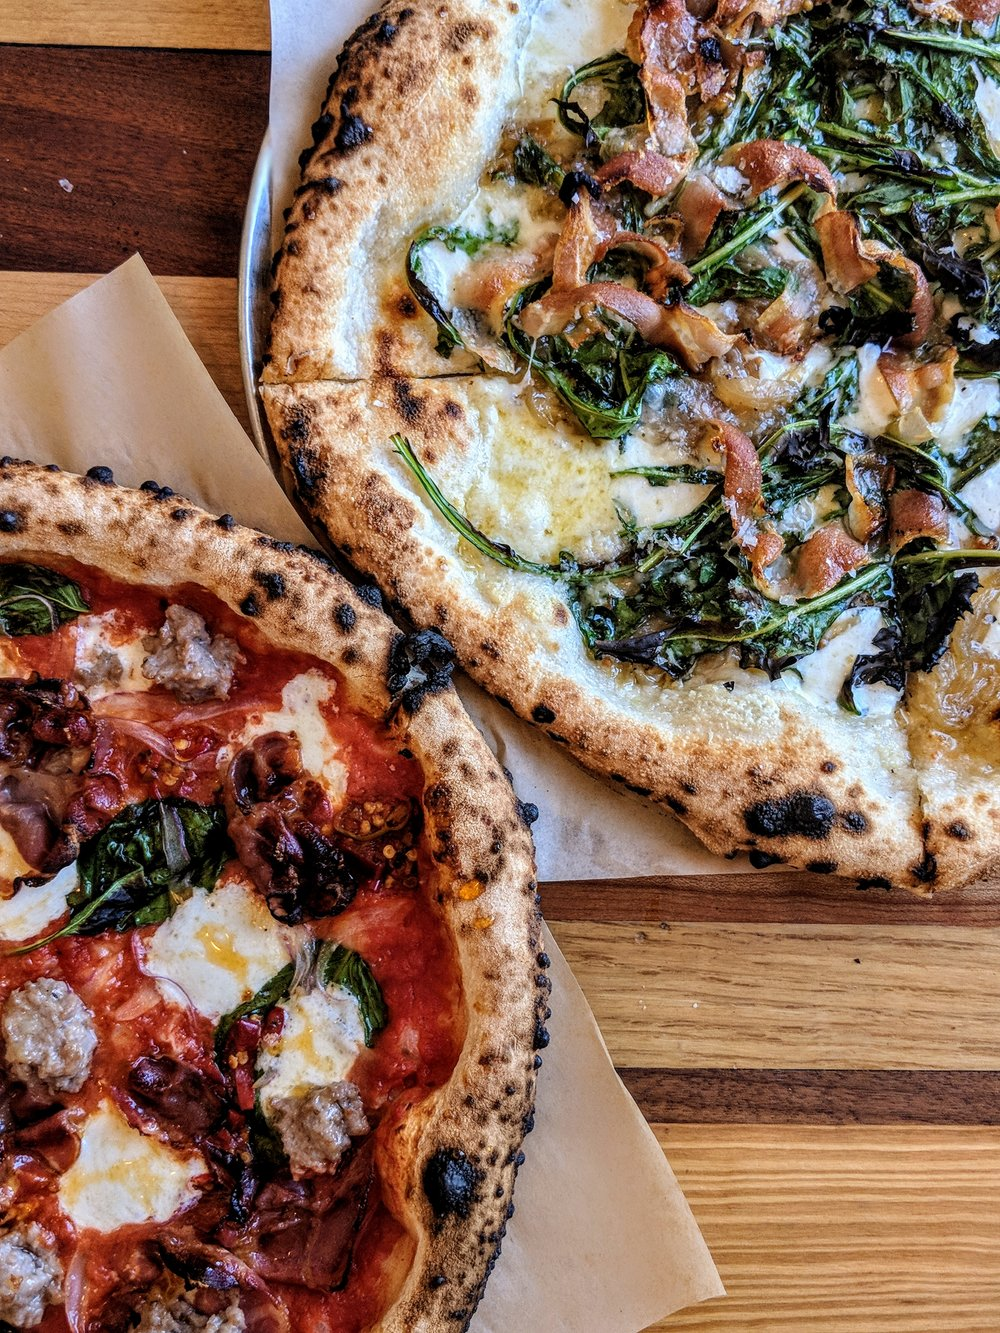 The Barbe and the Dandelion pizzas at 40 North